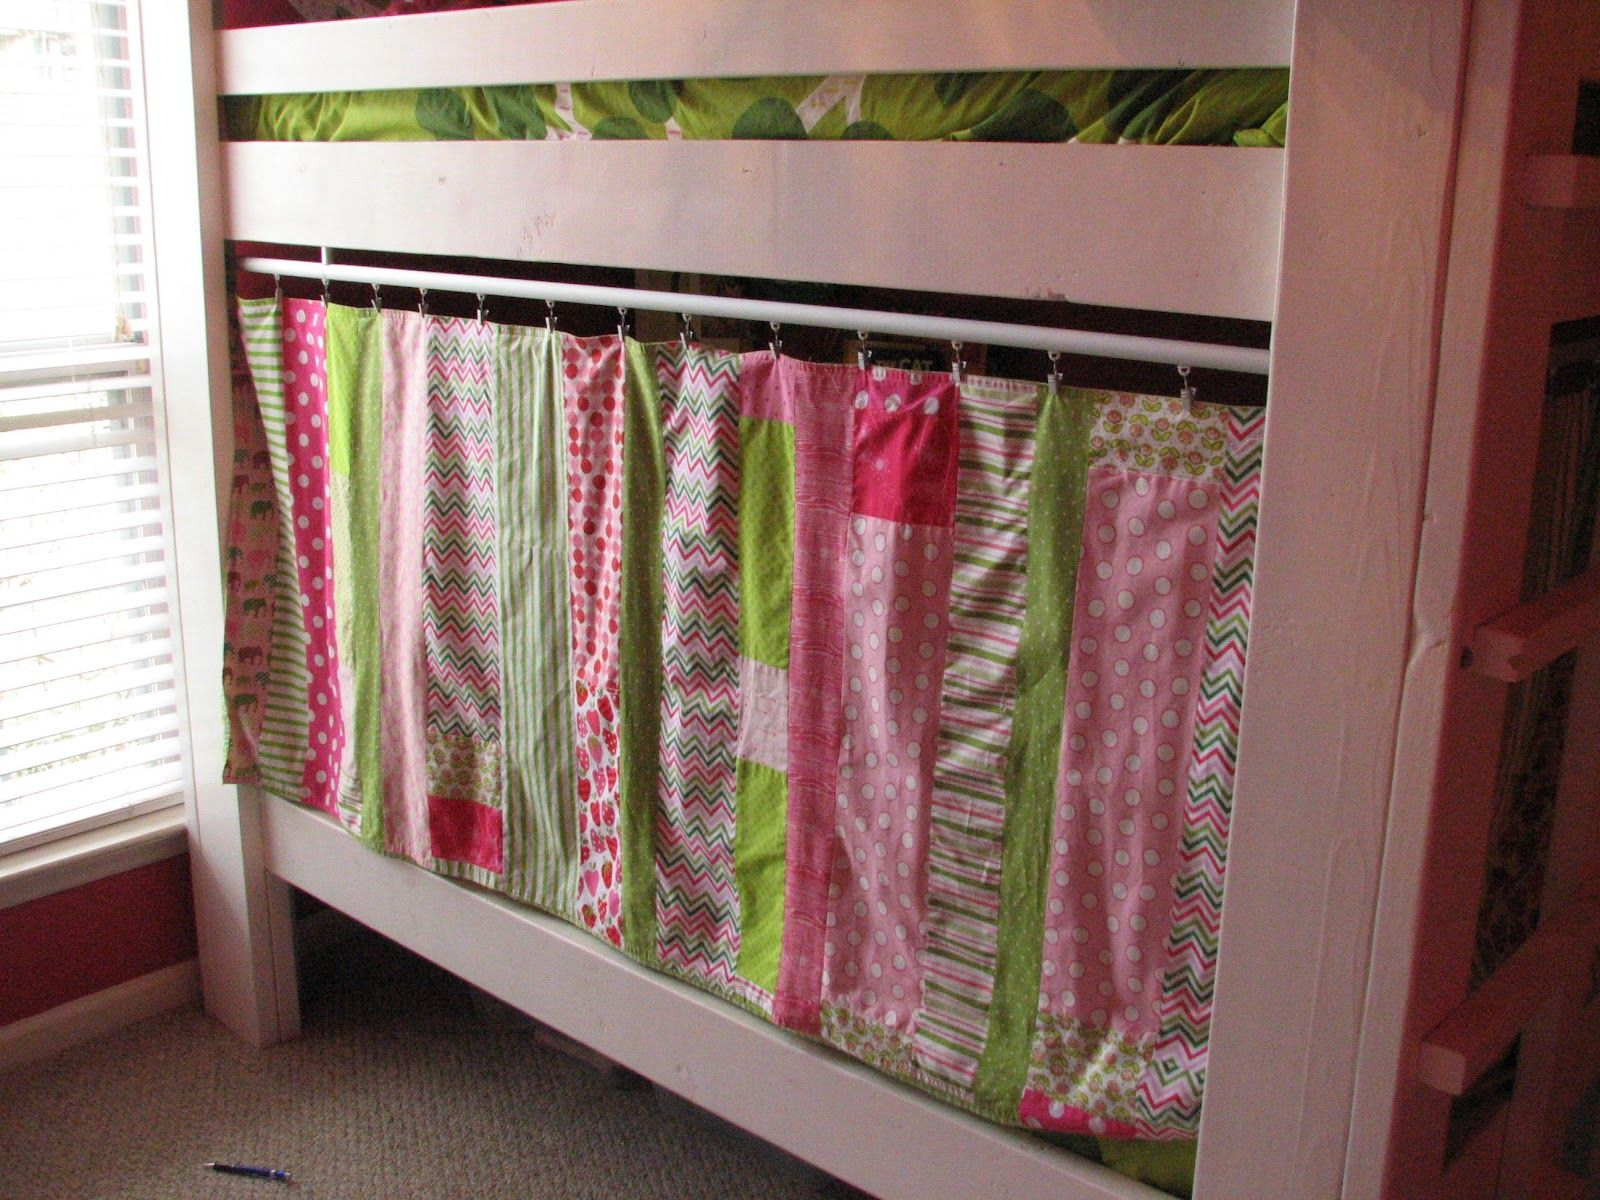 Bunk bed privacy and nice idea for simple bookshelf and lighting